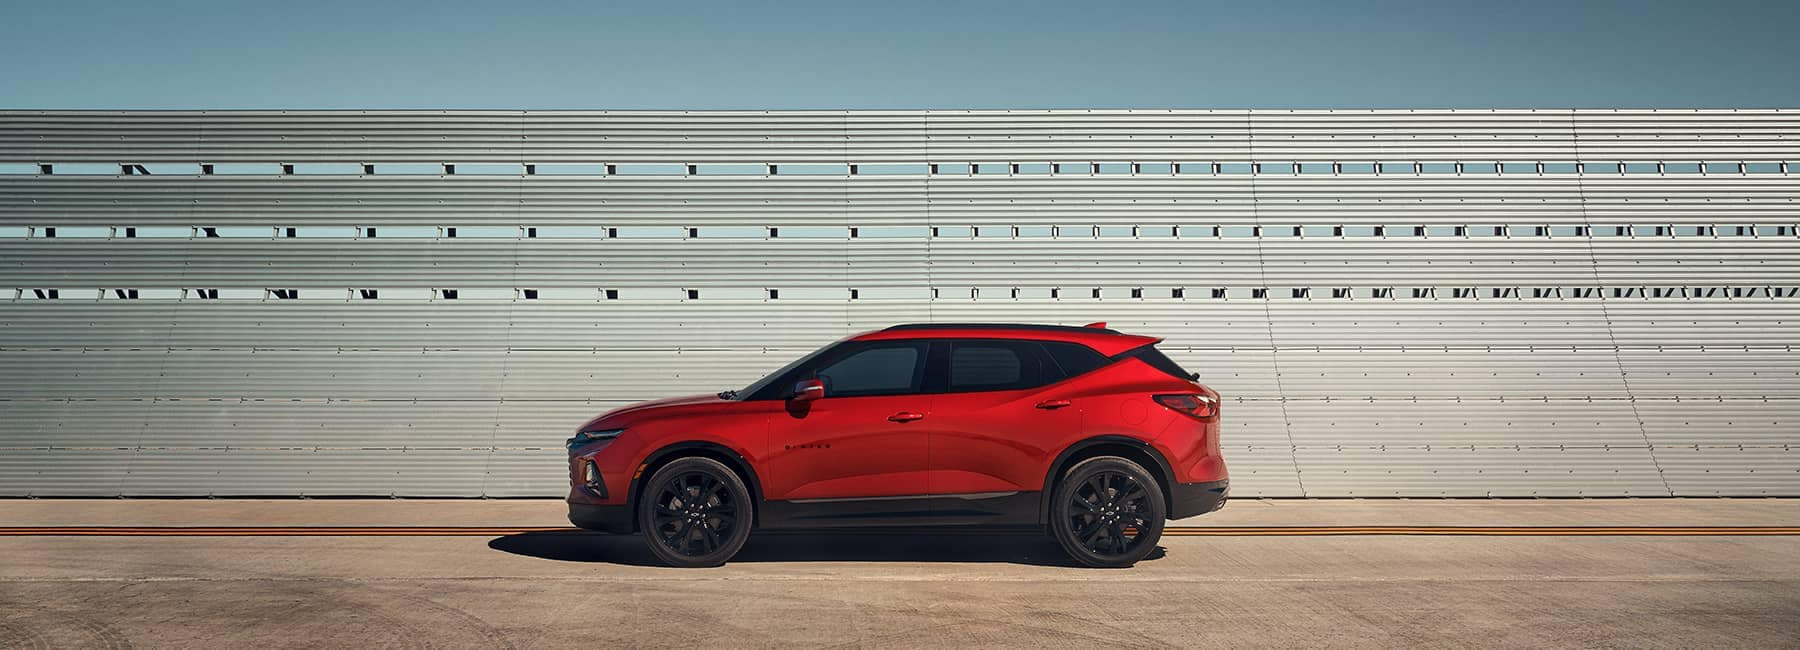 Red 2020 Chevrolet Blazer Sideview